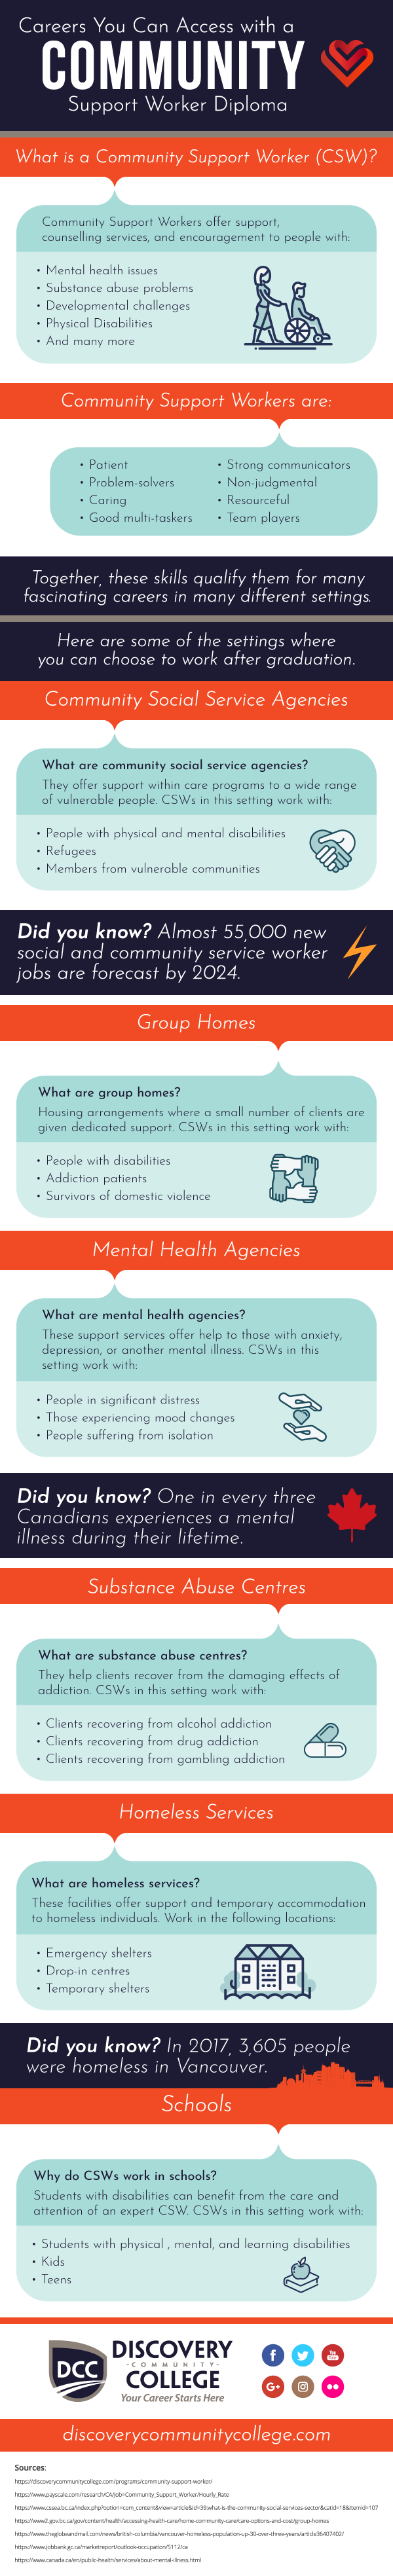 community support worker training